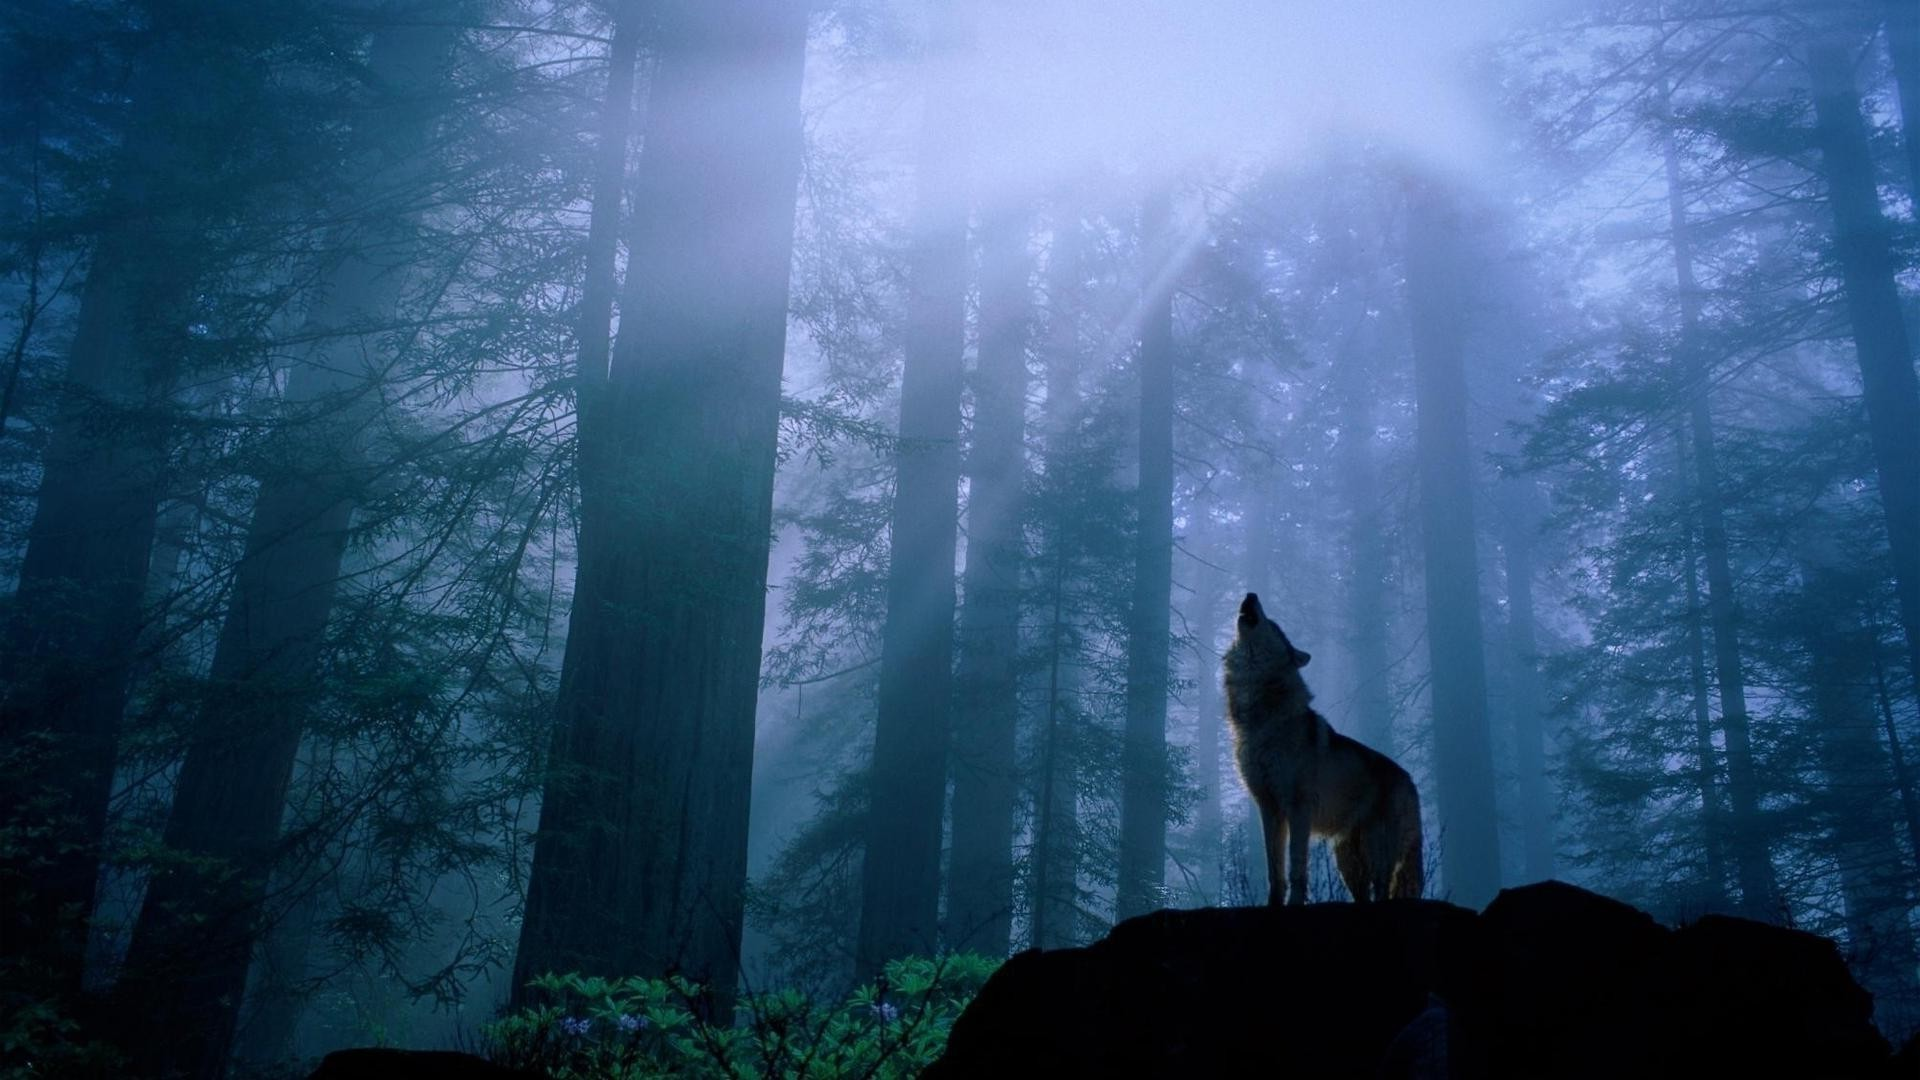 The wolf in the forest